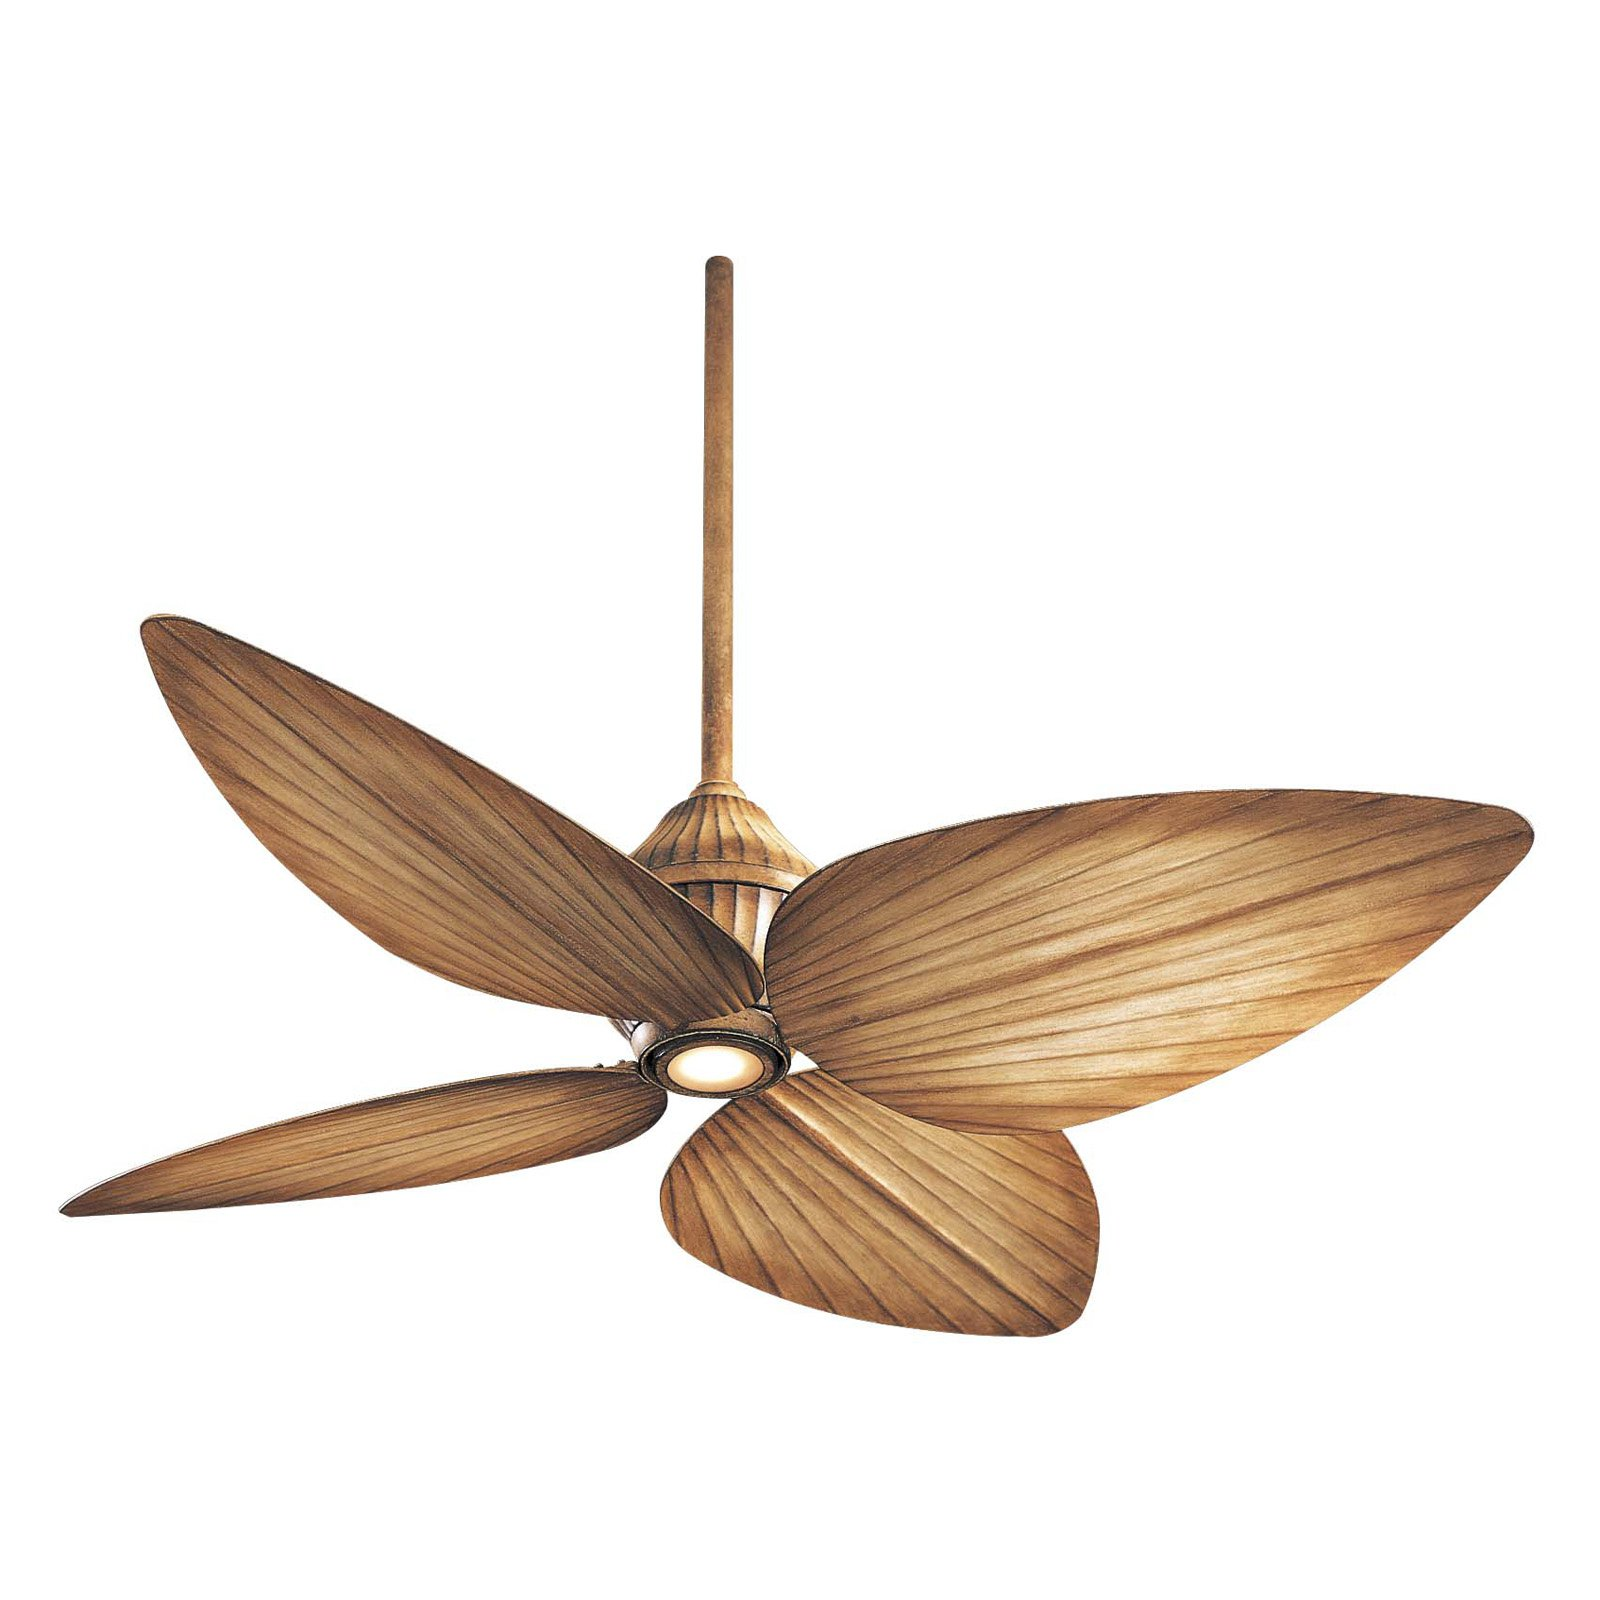 Minka Aire F581-BG Gauguin 52 in. Indoor / Outdoor Ceiling Fan - Bahama Beige